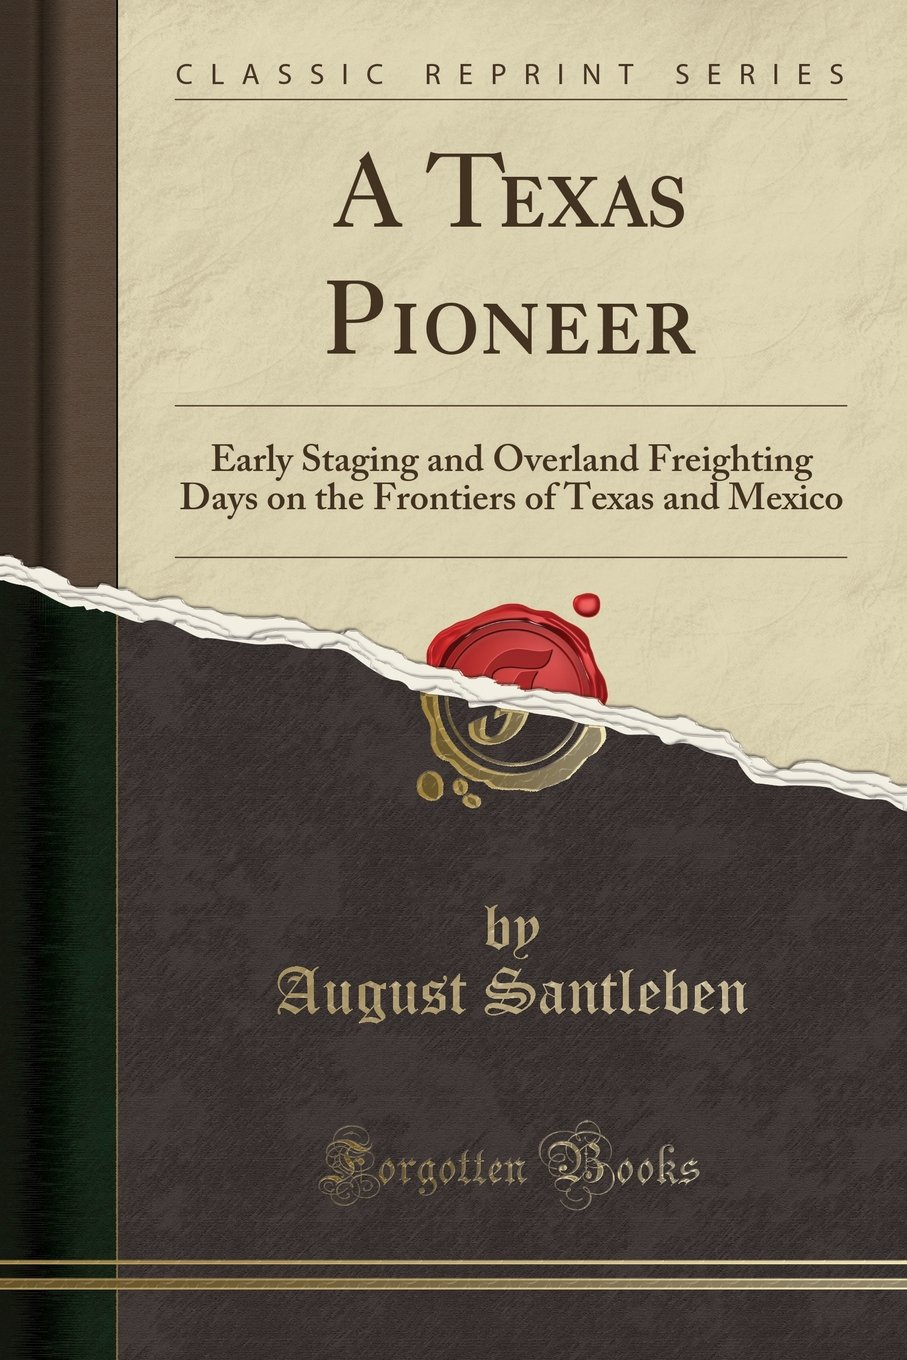 A Texas Pioneer (Great Texas Books)